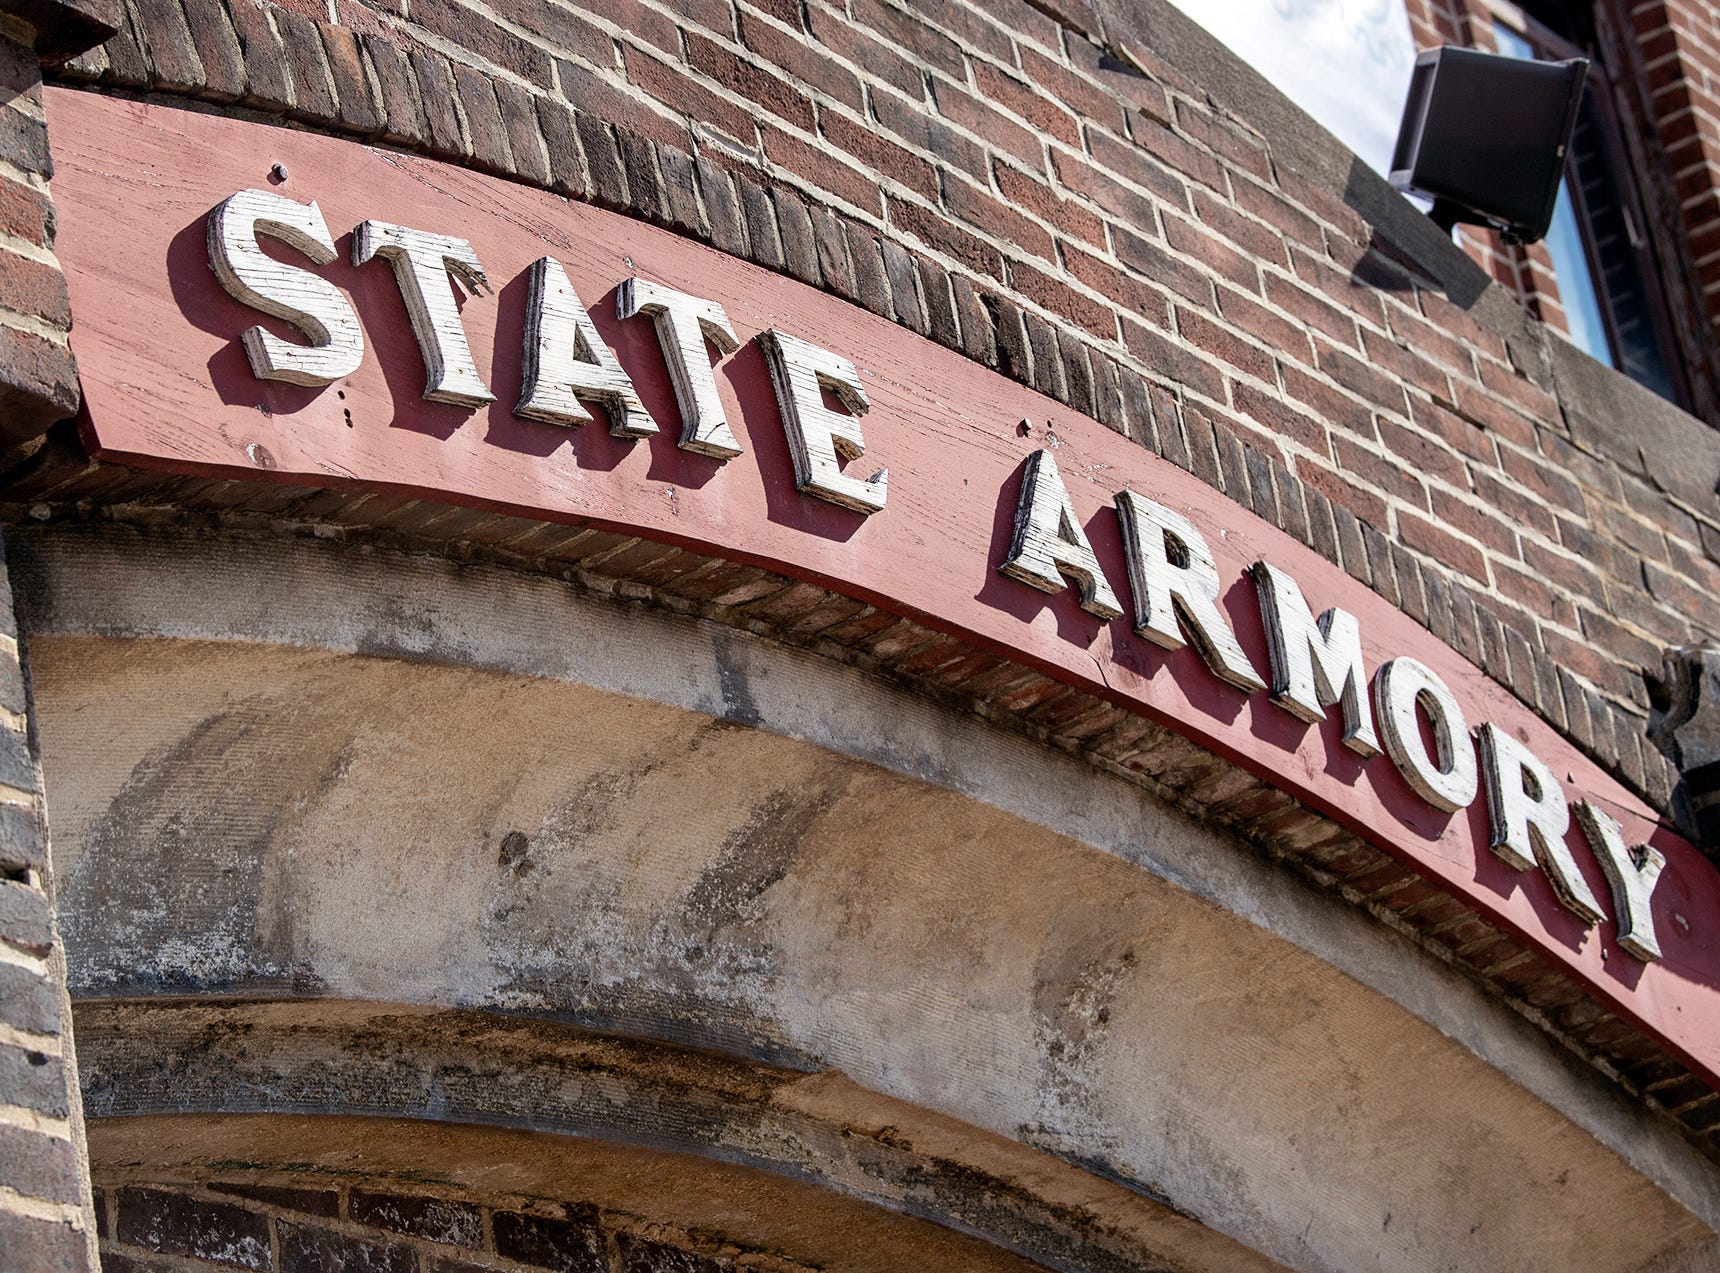 The York Armory, a brick fortress built in 1913 once used by the Pa. National Guard, will soon be transformed into Keystone Kidspace, an educational experience for families. It's expected to open in 2020.